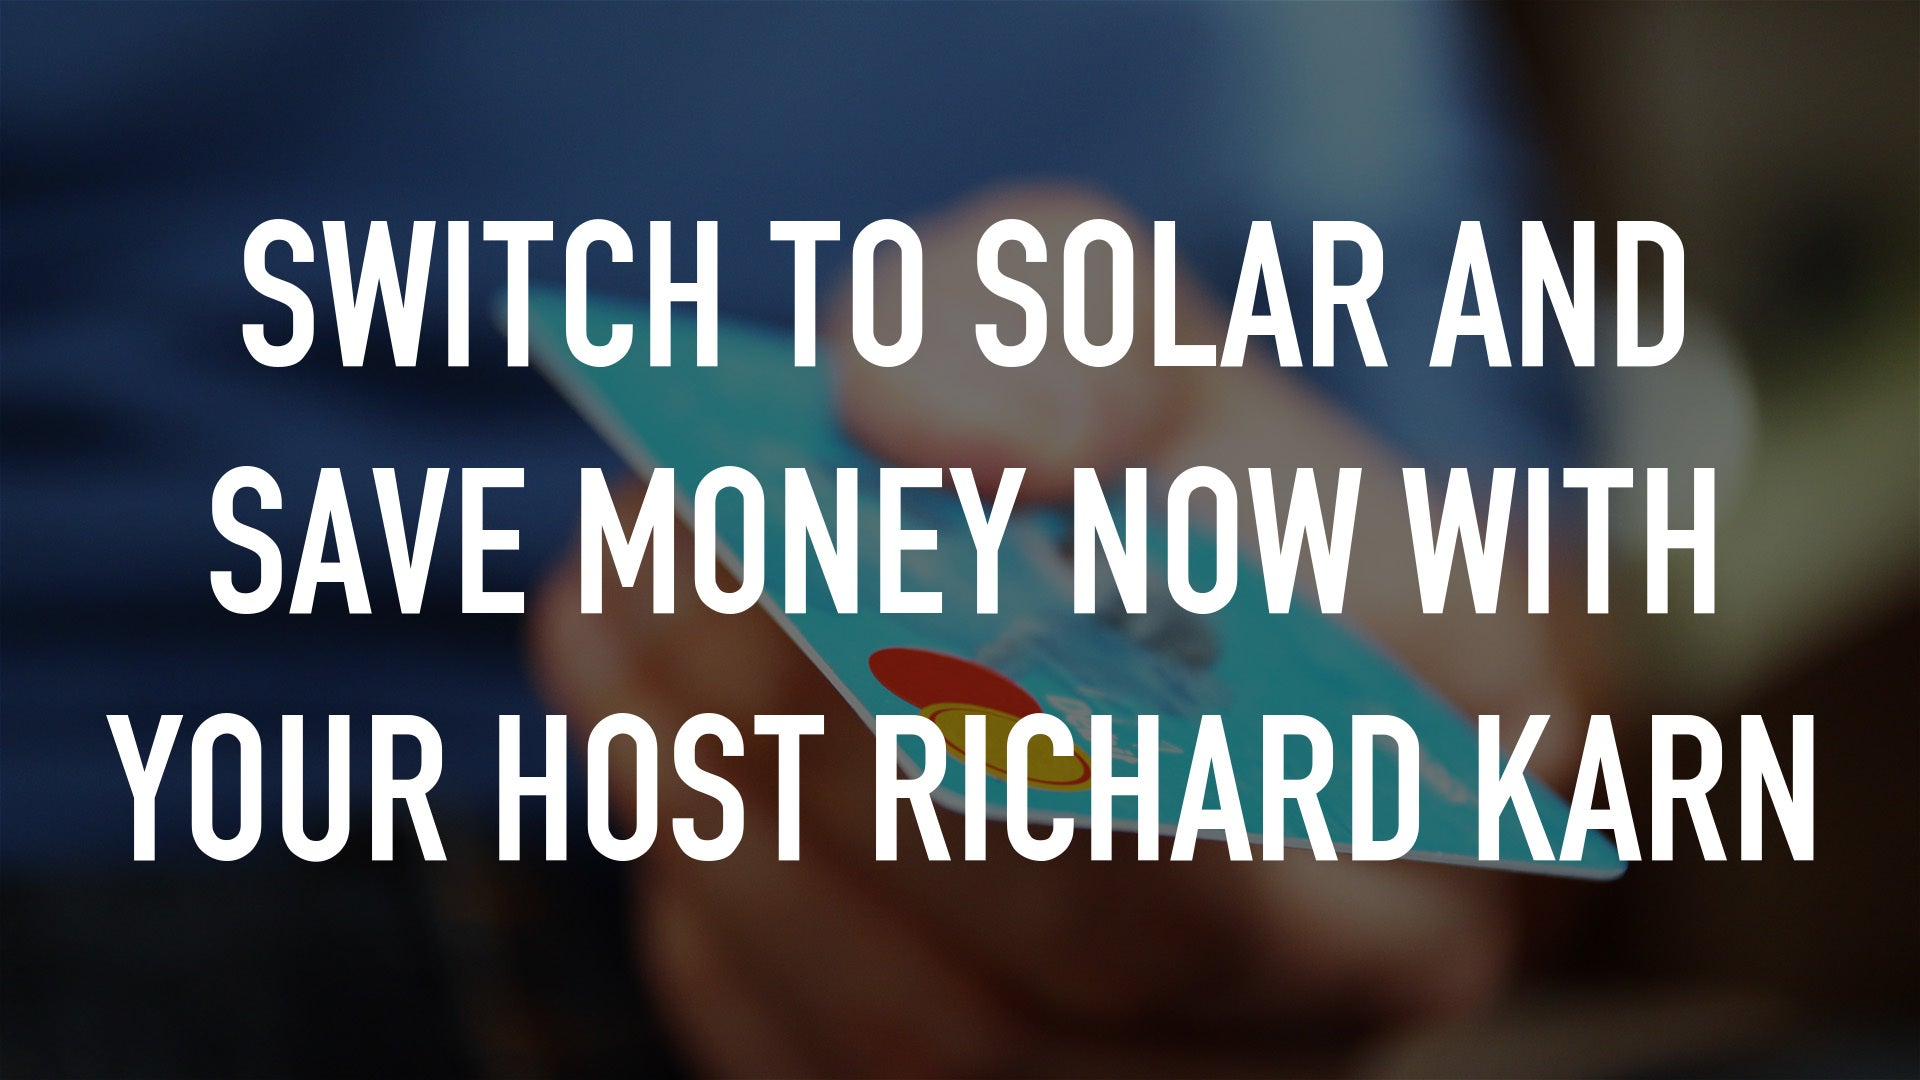 Switch to Solar and Save Money Now with your host Richard Karn